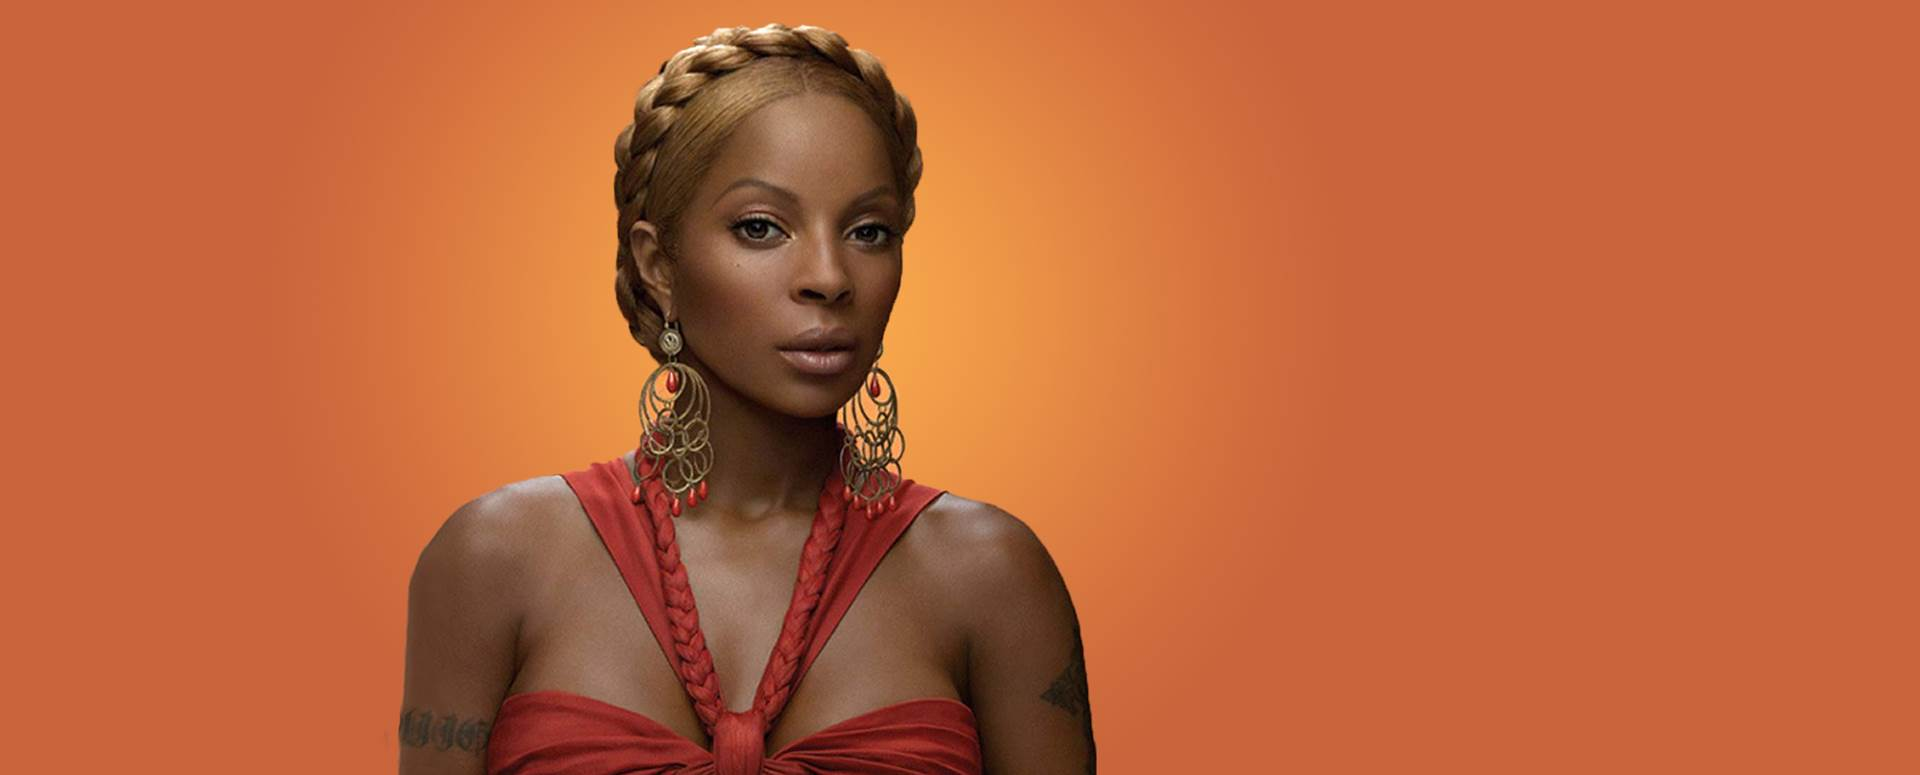 Book Mary J  Blige for Speaking, Events and Appearances